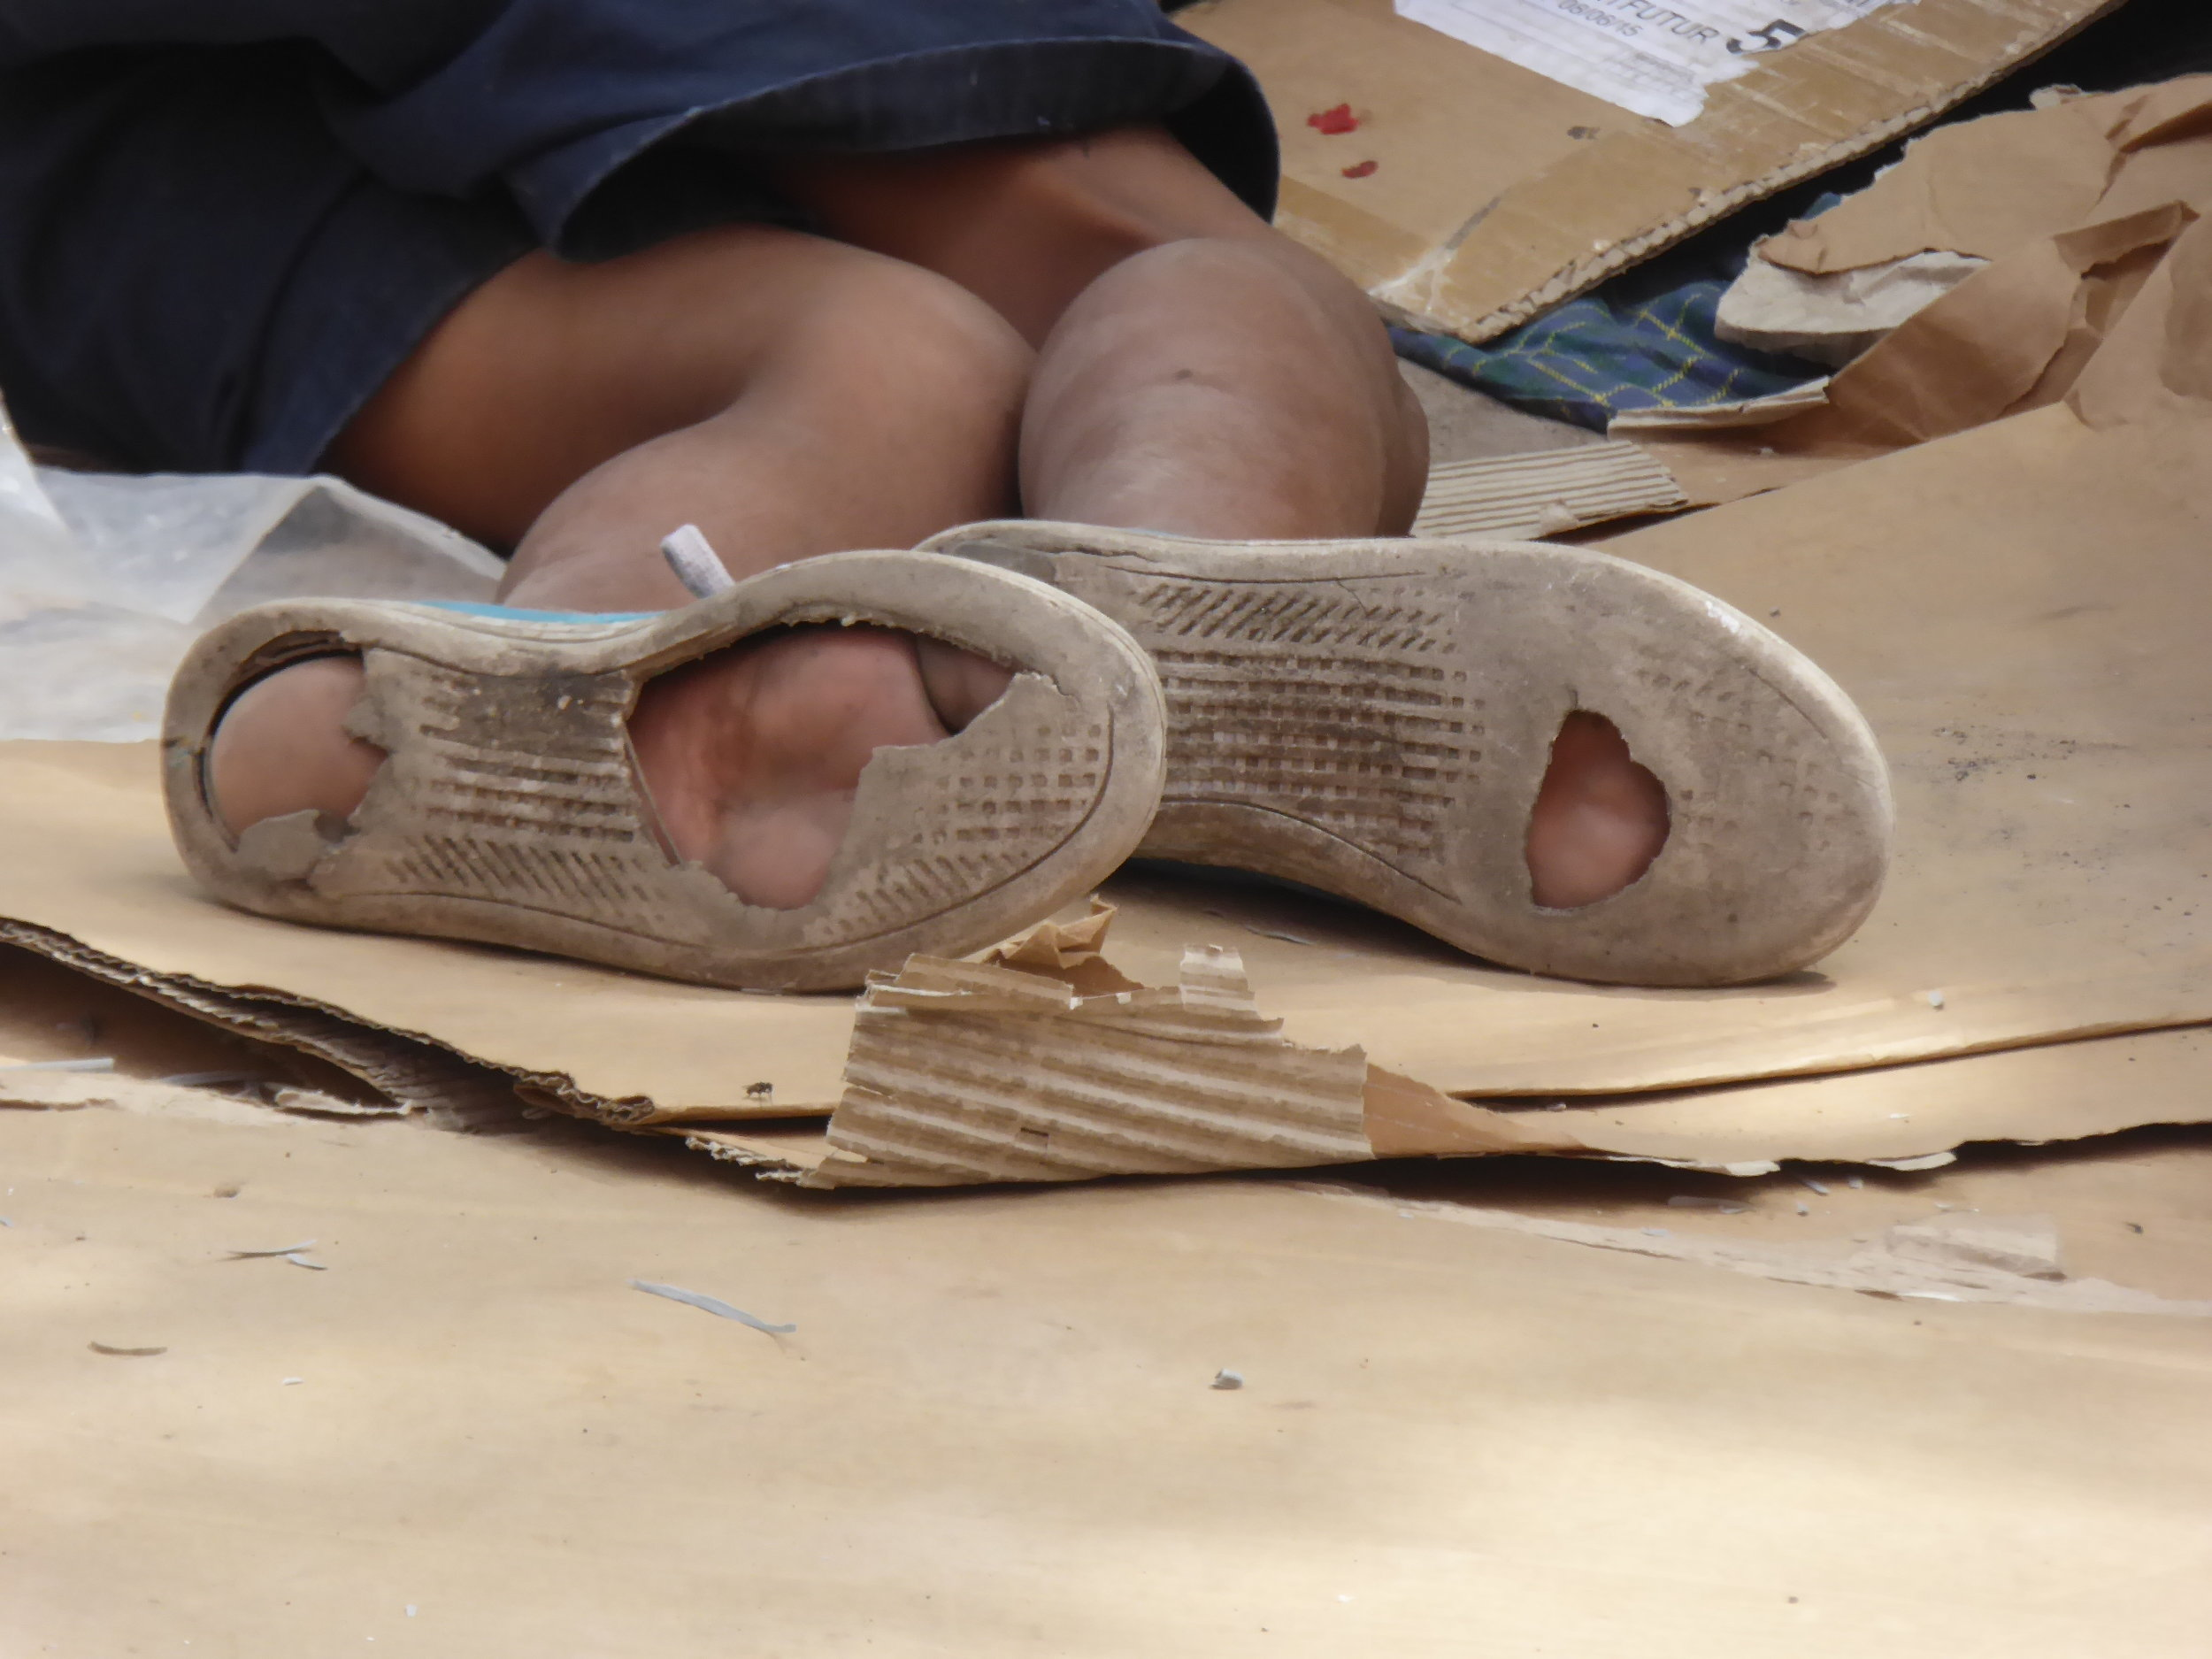 These are the feet and shoes of a homeless boy in Tegucigalpa, Honduras.We are supporting the recruitment of vulnerable boys and girls into Covvenant House (Casa Alianza) before they are forced into gangs or are trafficked.